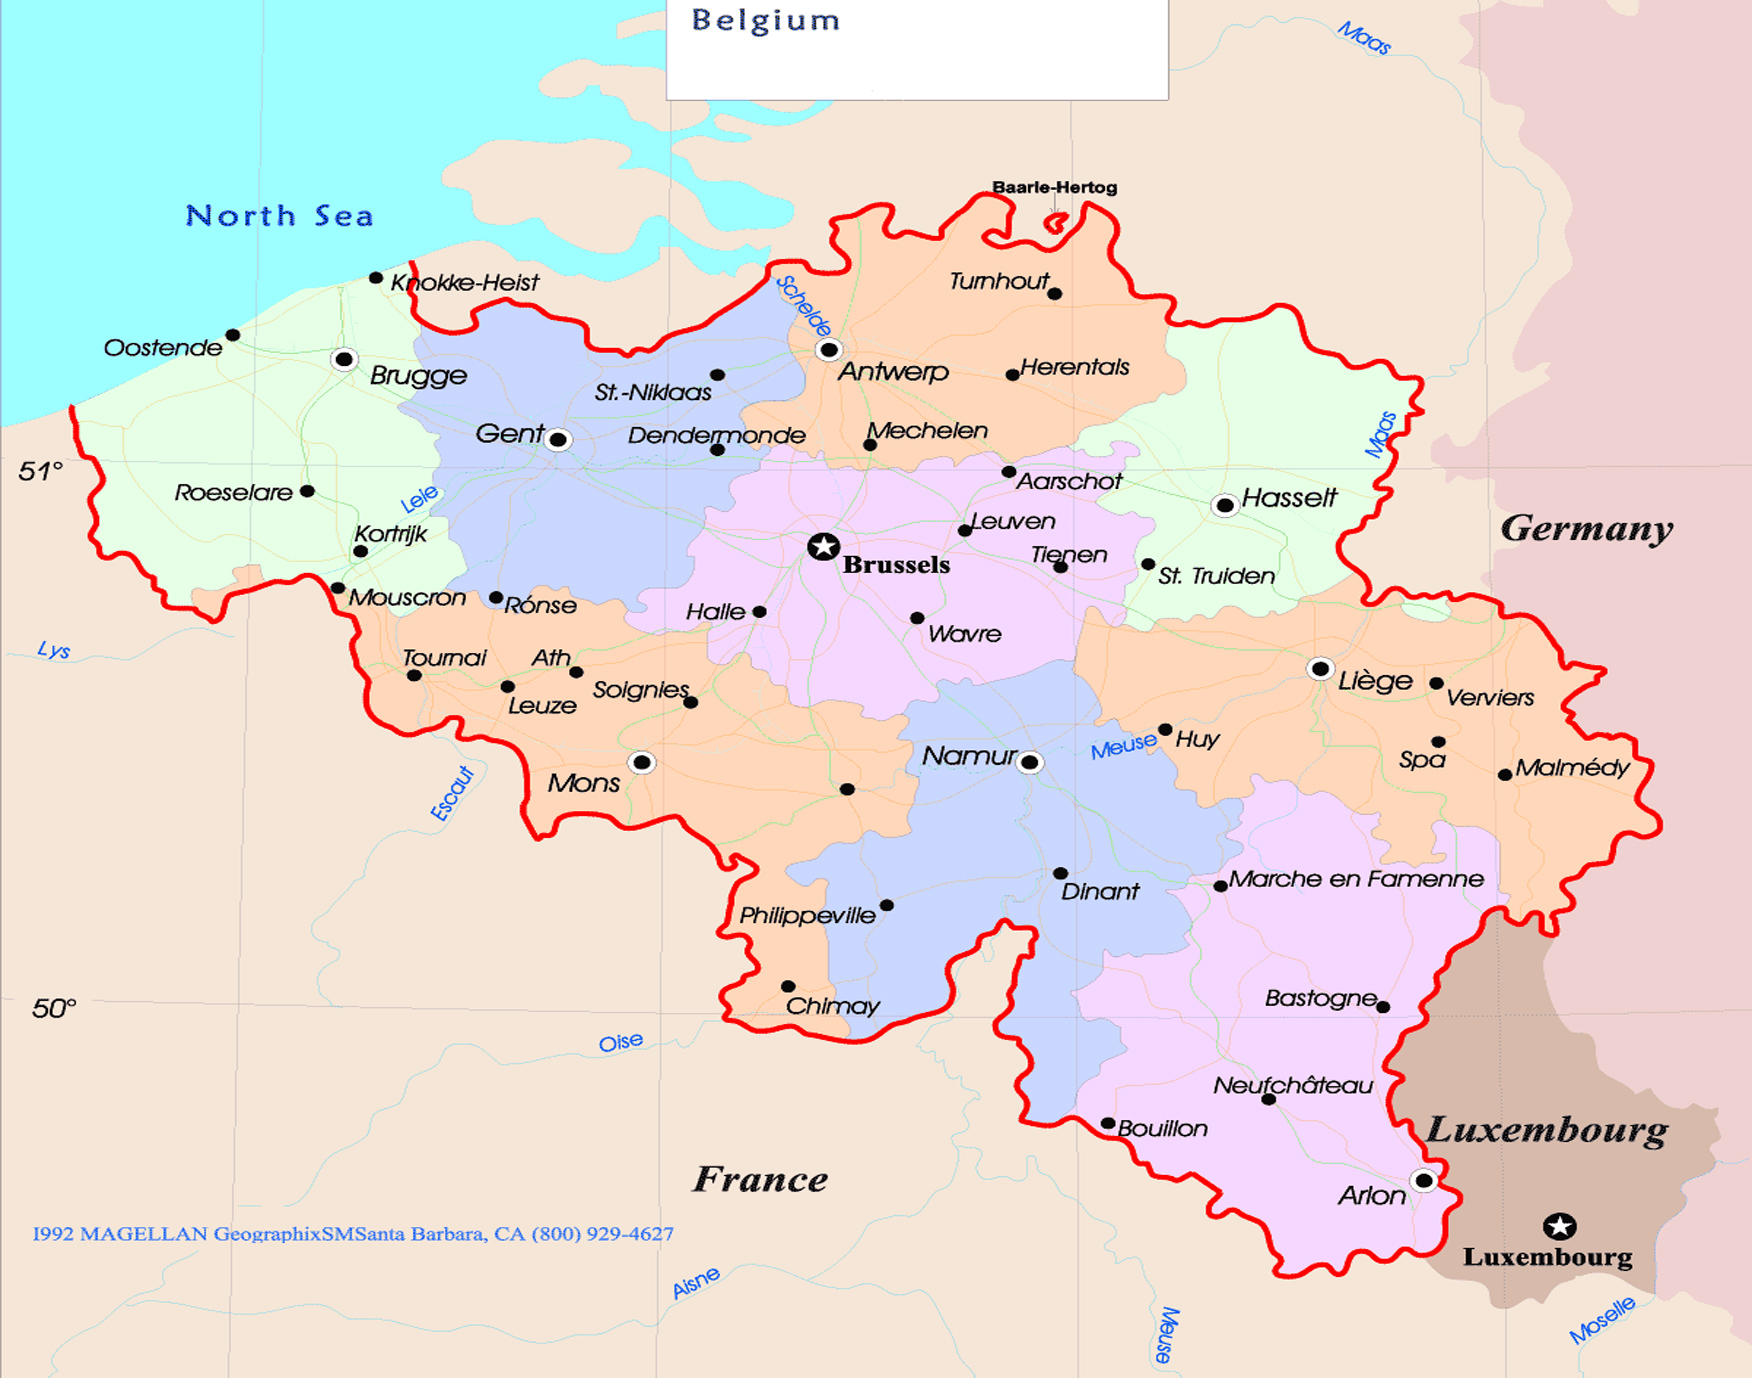 maps belgium – Map of Belgium with Cities